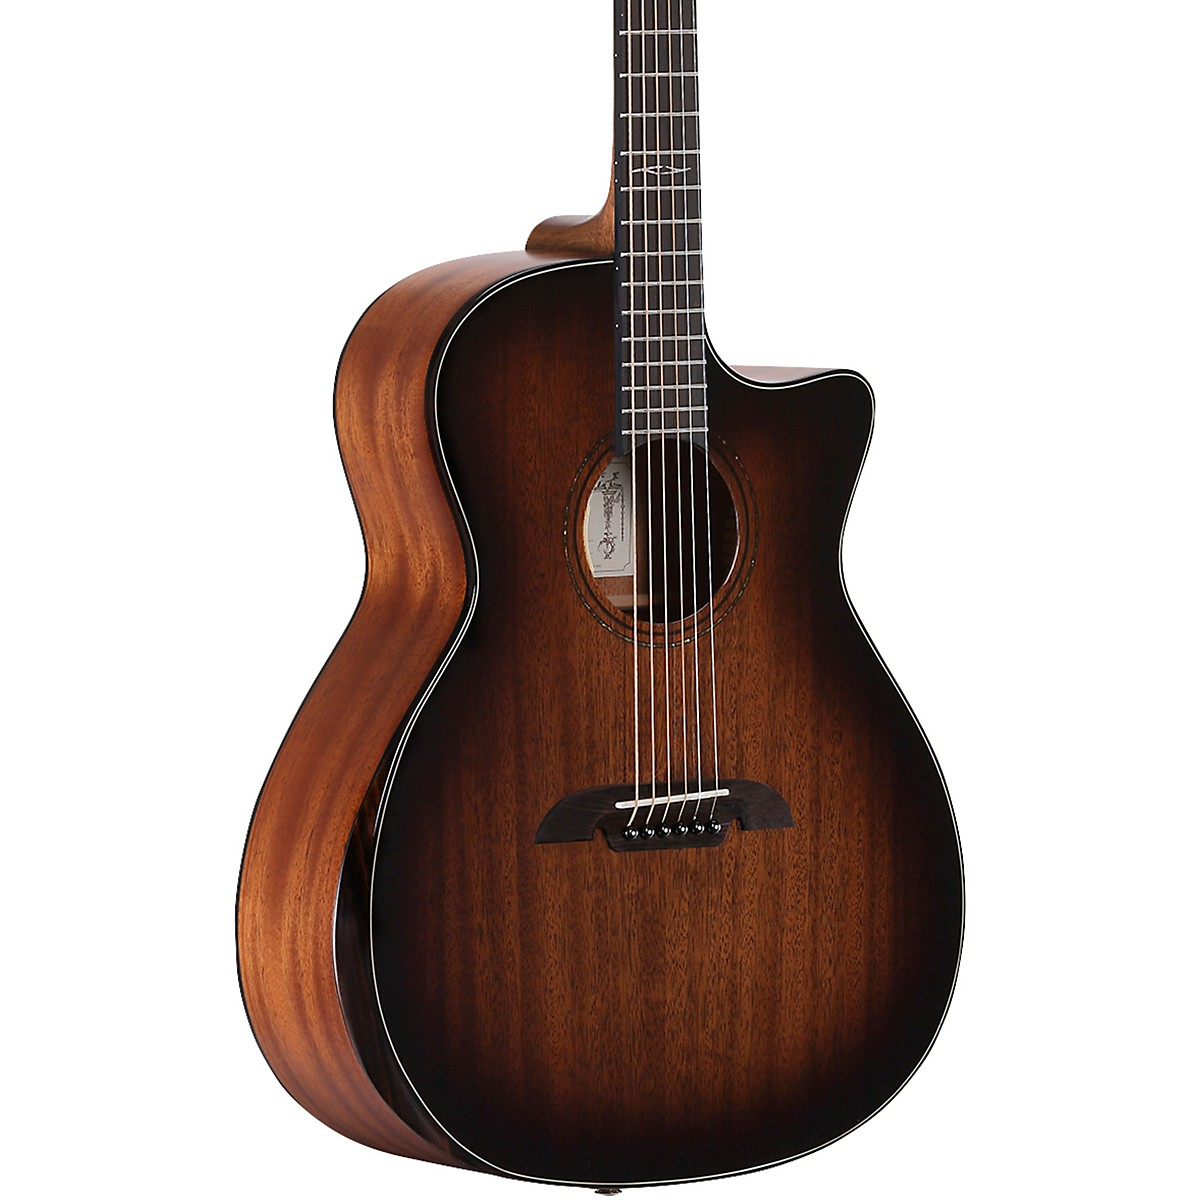 Alvarez AG660CEARSHB Artist Series Grand Auditorium Acoustic-Electric Guitar